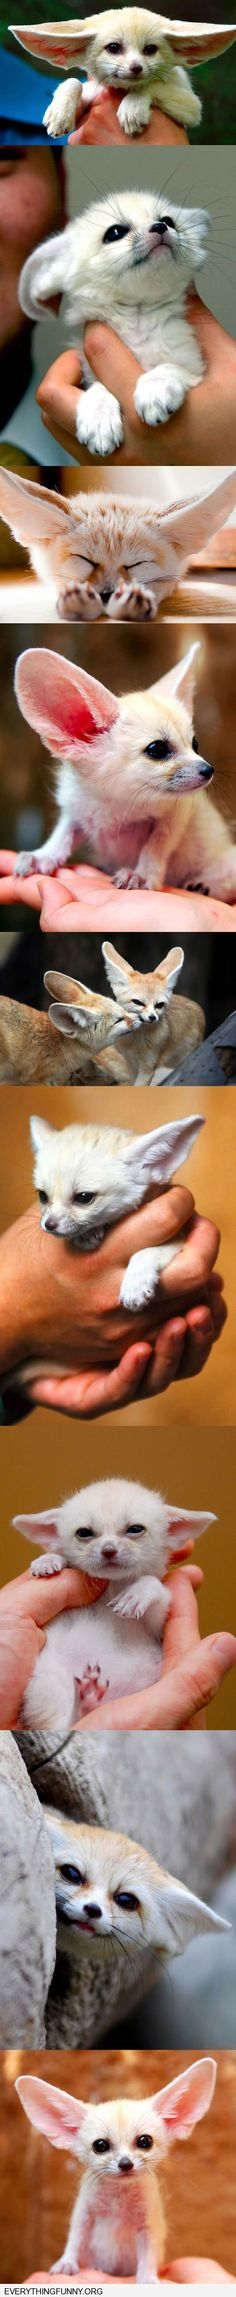 Possibly Cutest Animal That Ever Lived (scheduled via http://www.tailwindapp.com?utm_source=pinterest&utm_medium=twpin&utm_content=post172374473&utm_campaign=scheduler_attribution)